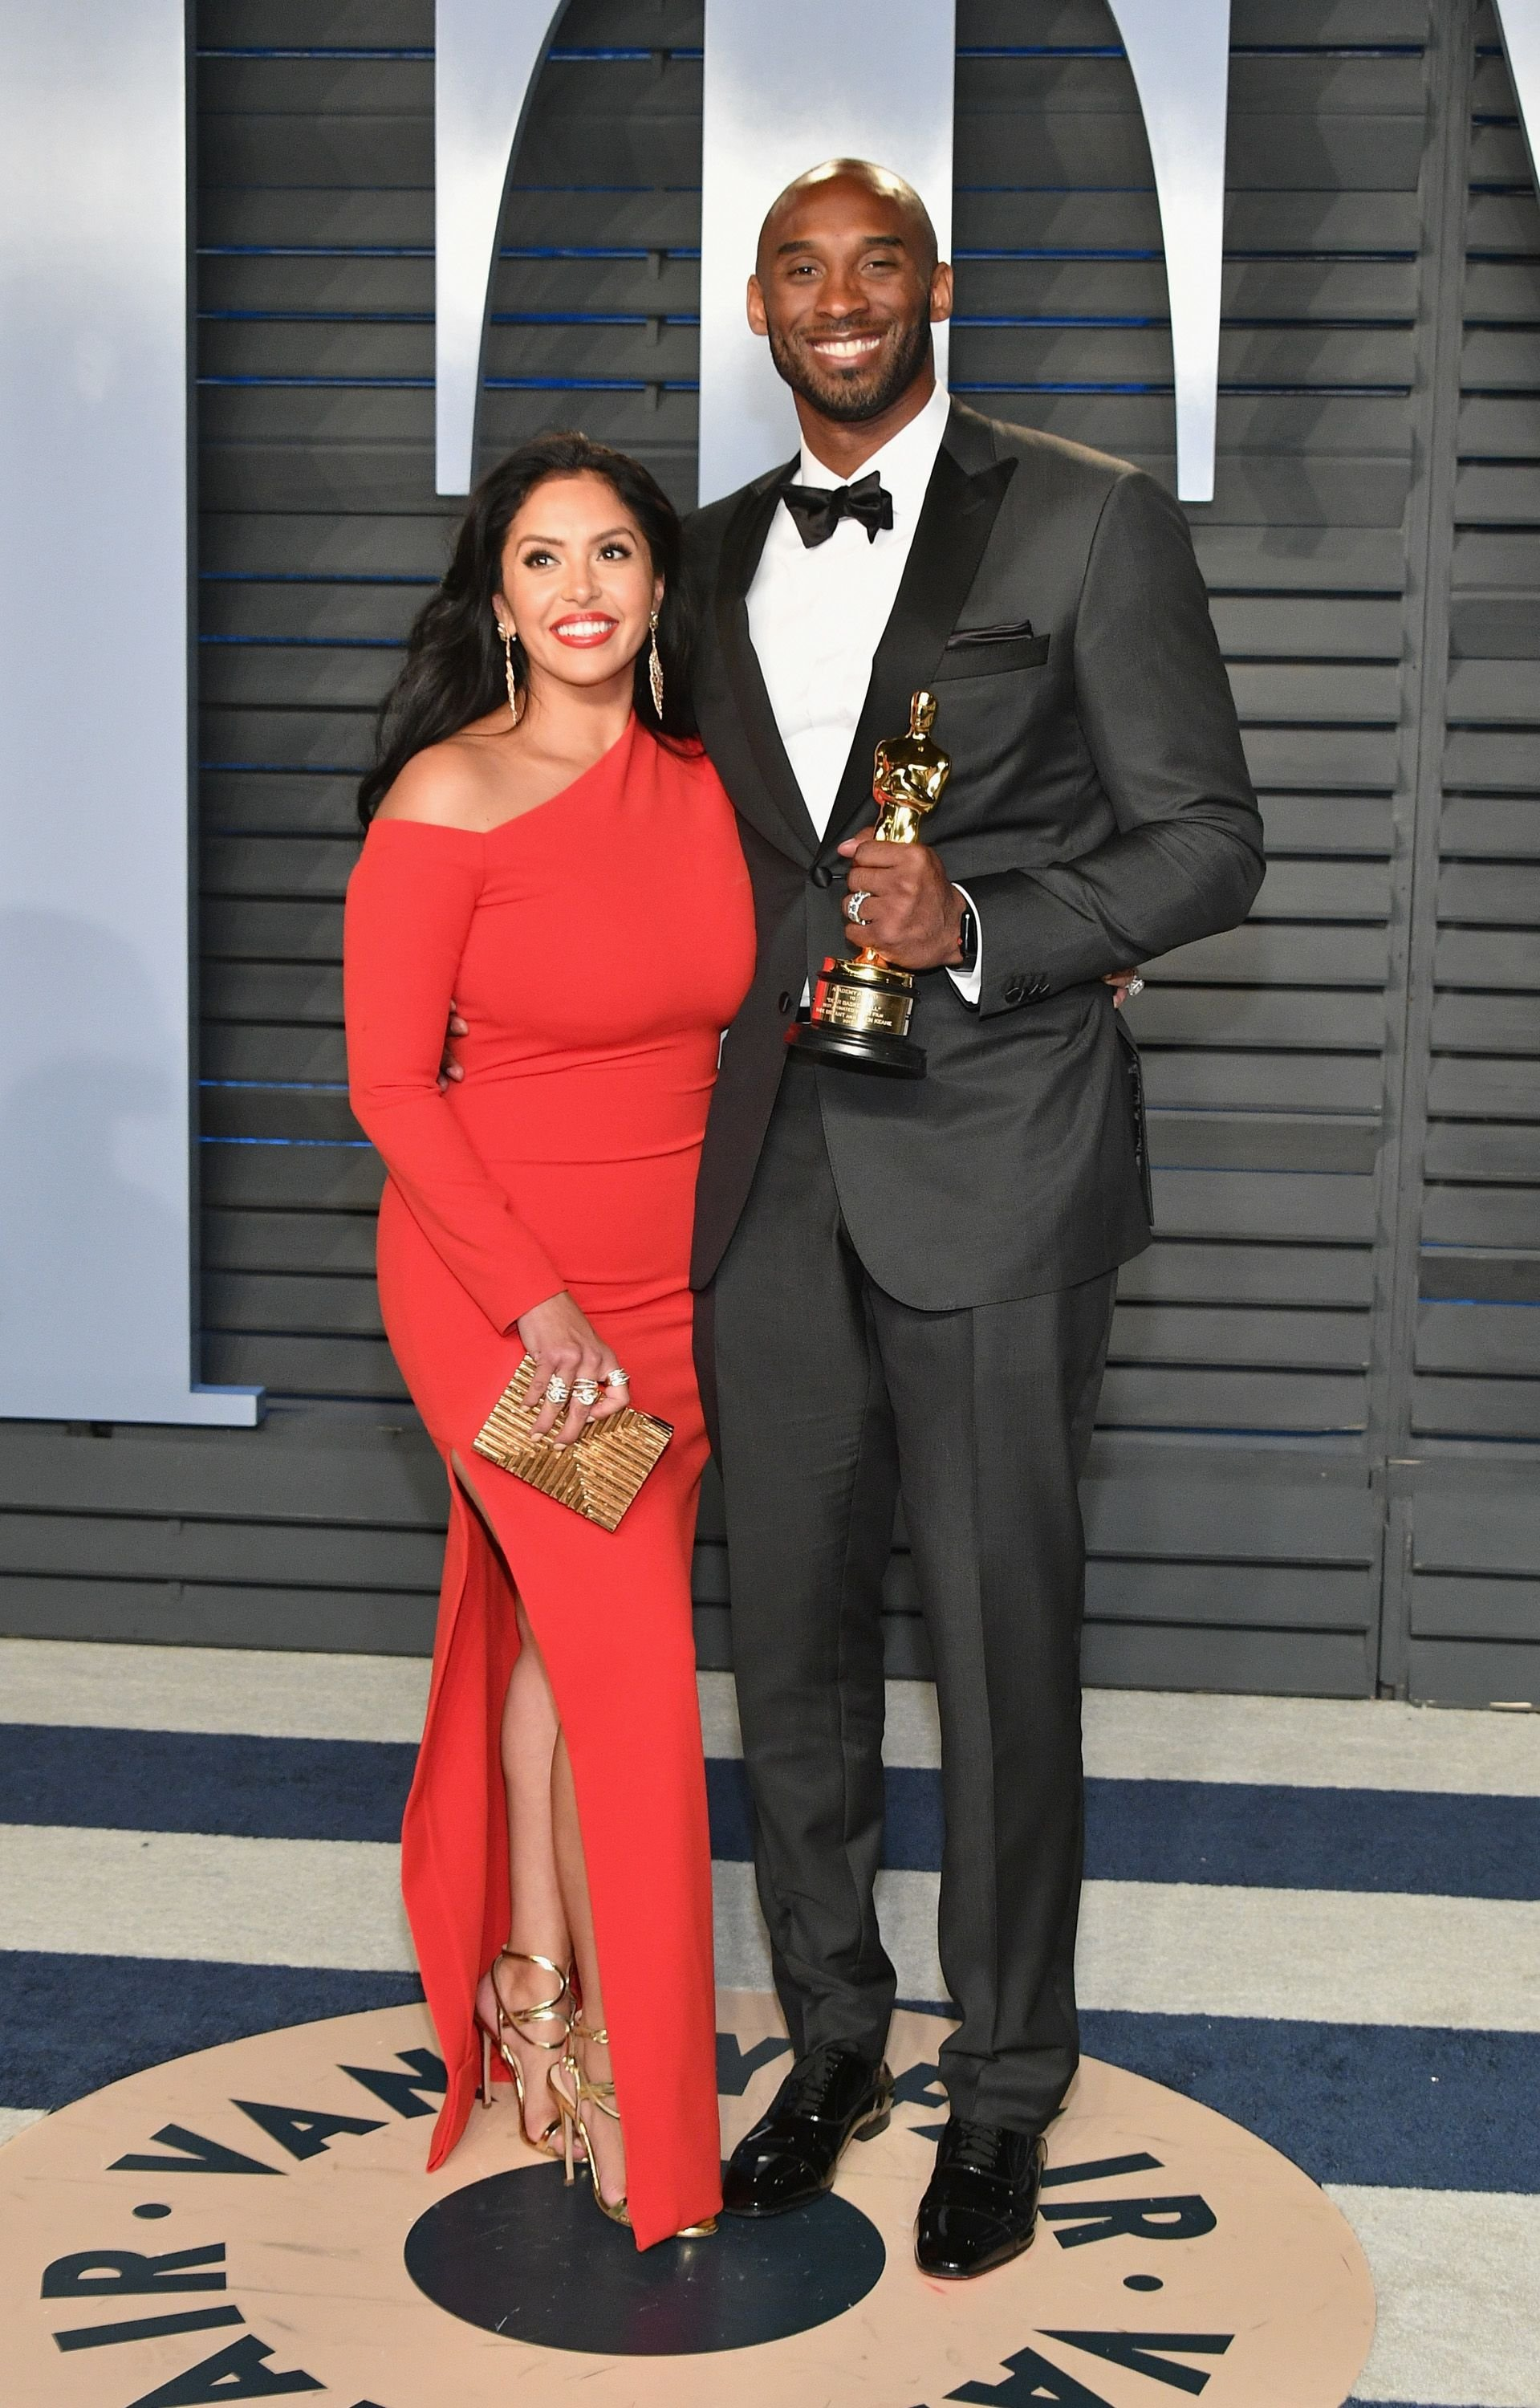 Vanessa Bryant and Kobe Bryant at the 2018 Vanity Fair Oscar Party at Wallis Annenberg Center for the Performing Arts on March 4, 2018 | Photo: Getty Images